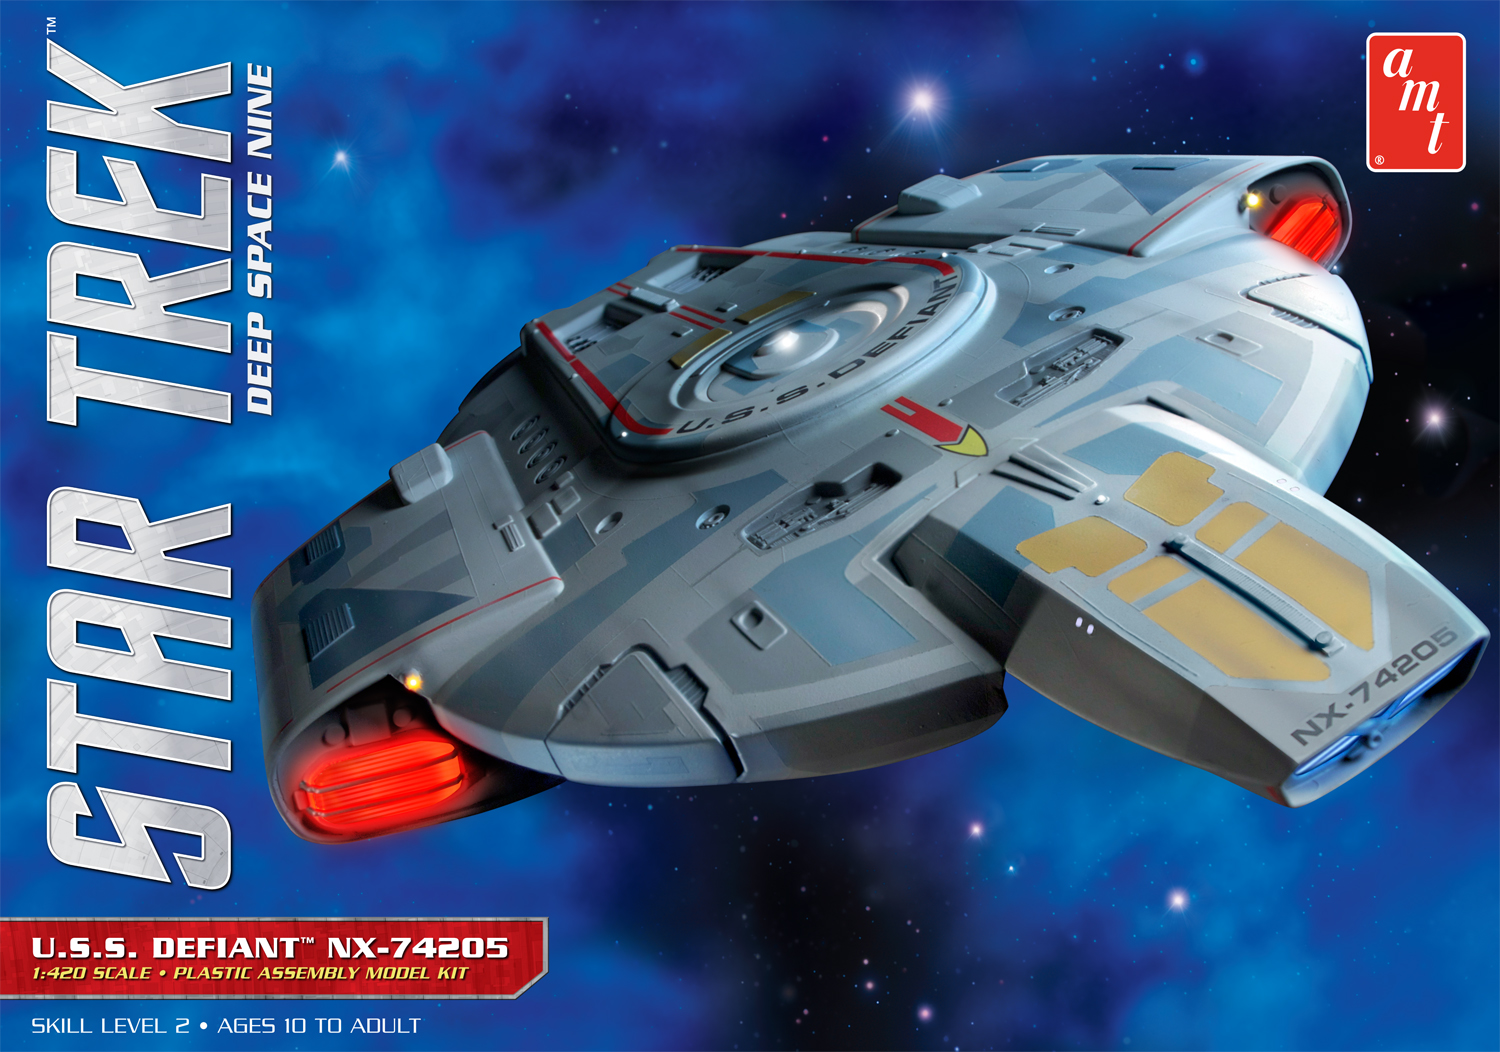 Star Trek Uss Defiant moreover 2018 Buick Regal TourX Overview C27061 likewise Penelope Cruz Got Some Weight Or Breast 18 additionally 1970 Dodge Challenger Ek2 Go Mangoblack Leather also 24195 1963 chevrolet impala. on plymouth model u